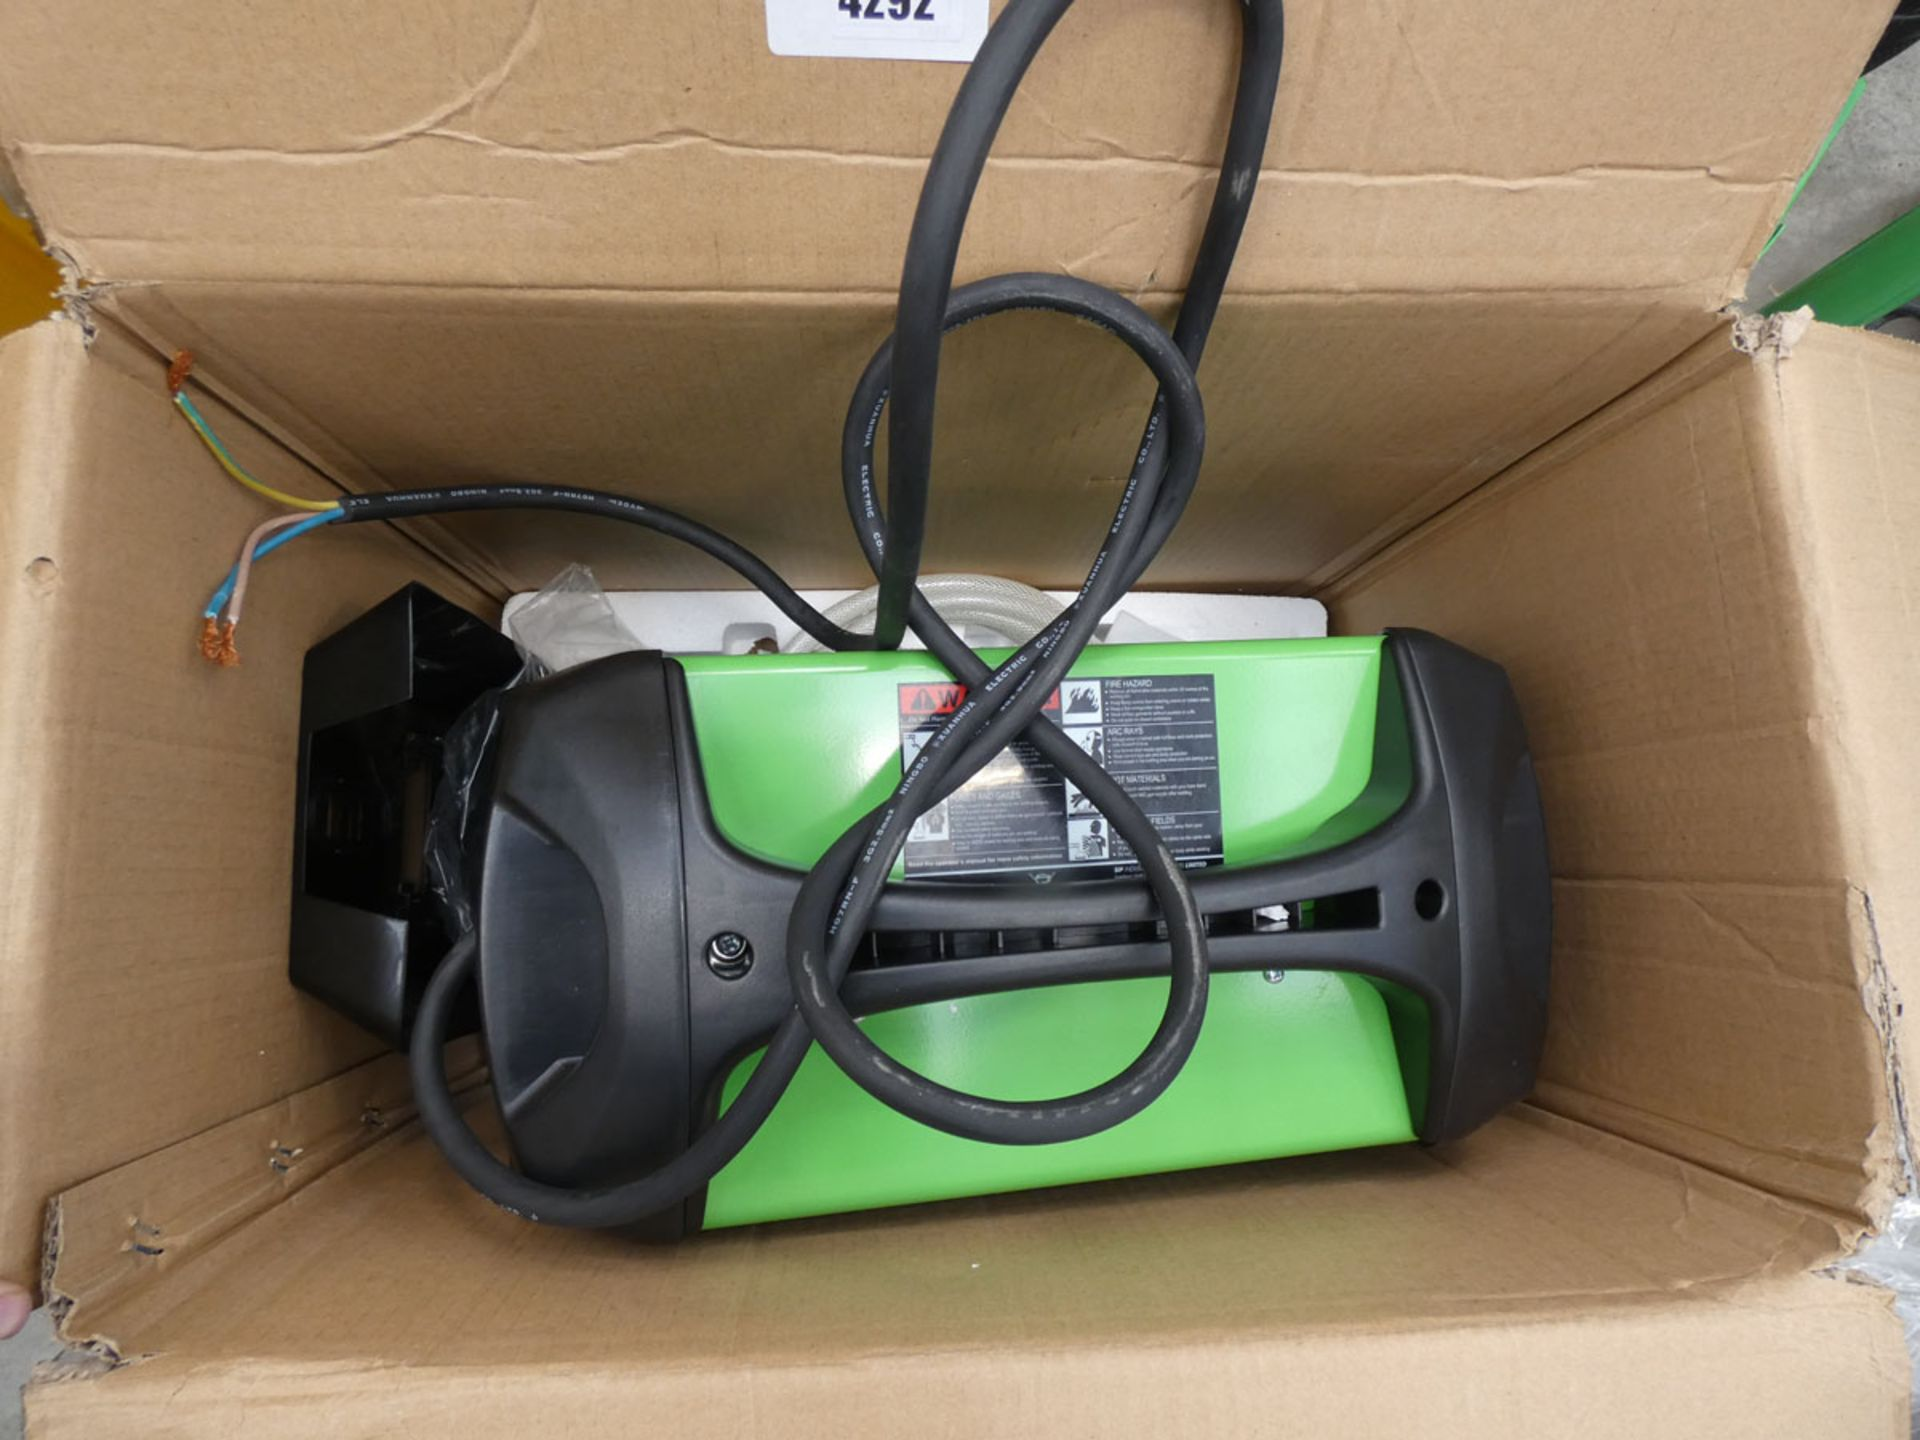 SIP Weldmate HG2300MP inverter welder, boxed - Image 3 of 3